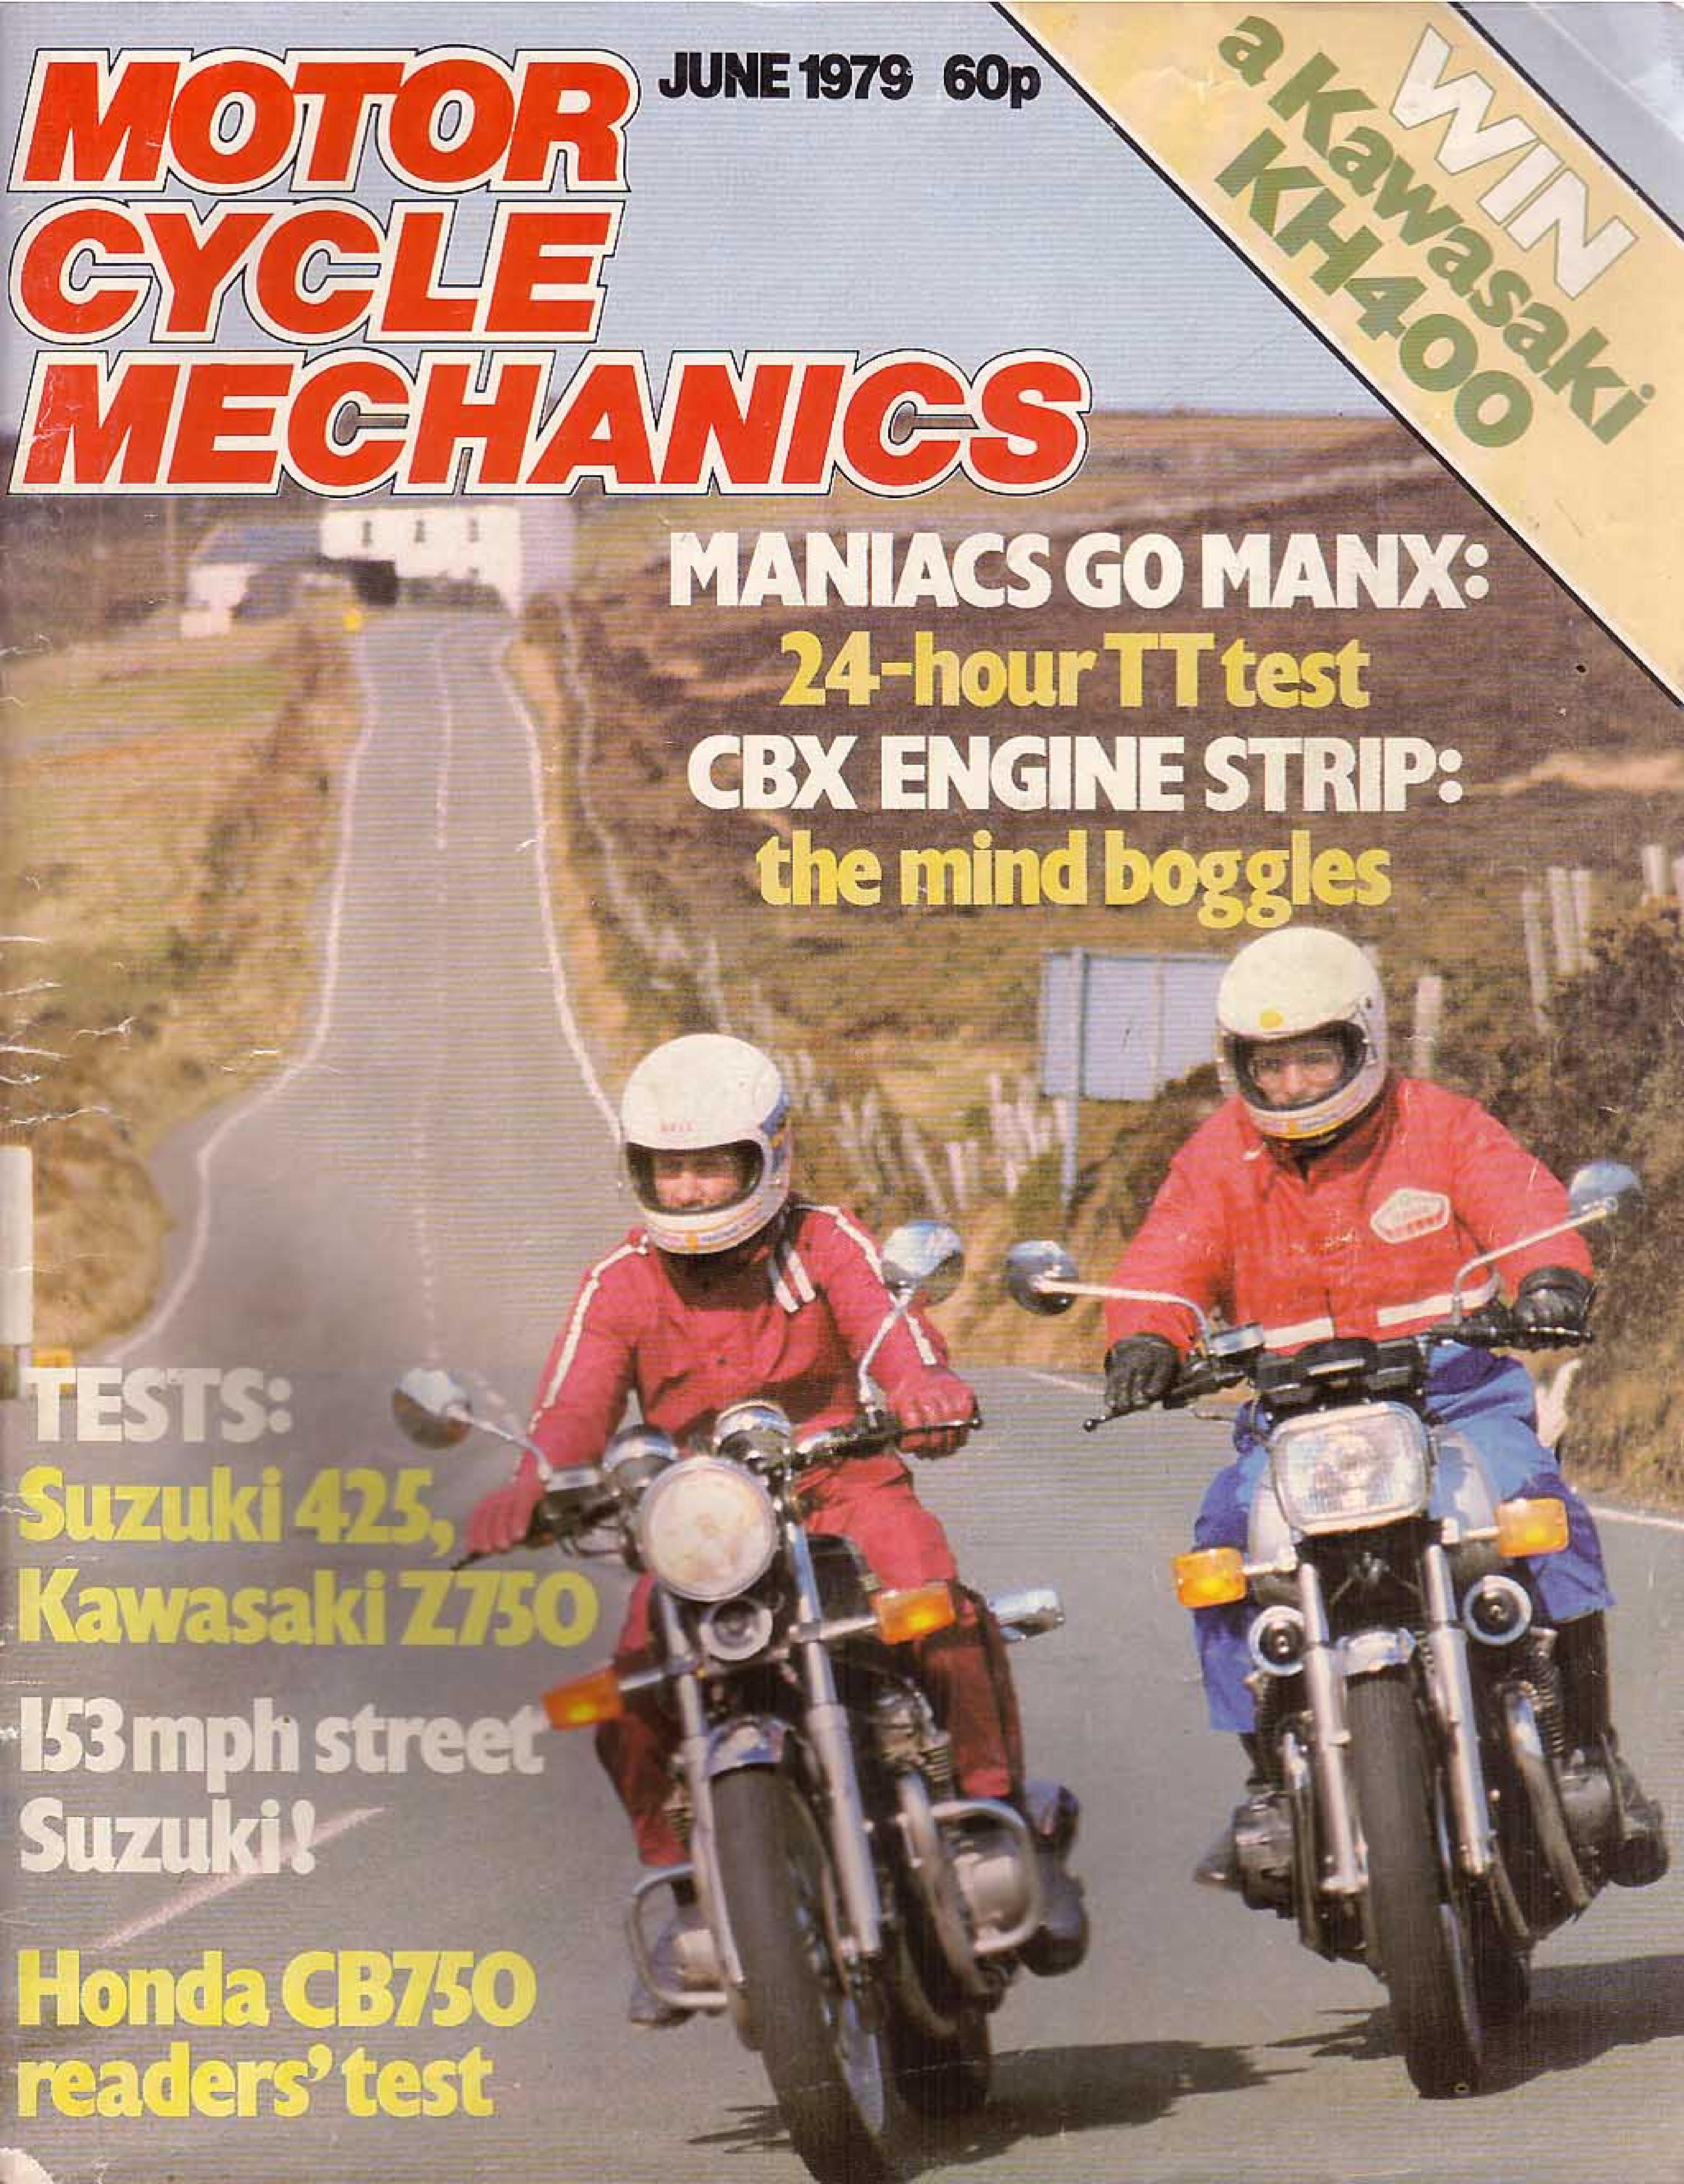 Motorcycle Mechanics about Honda CB650 (June 1979)